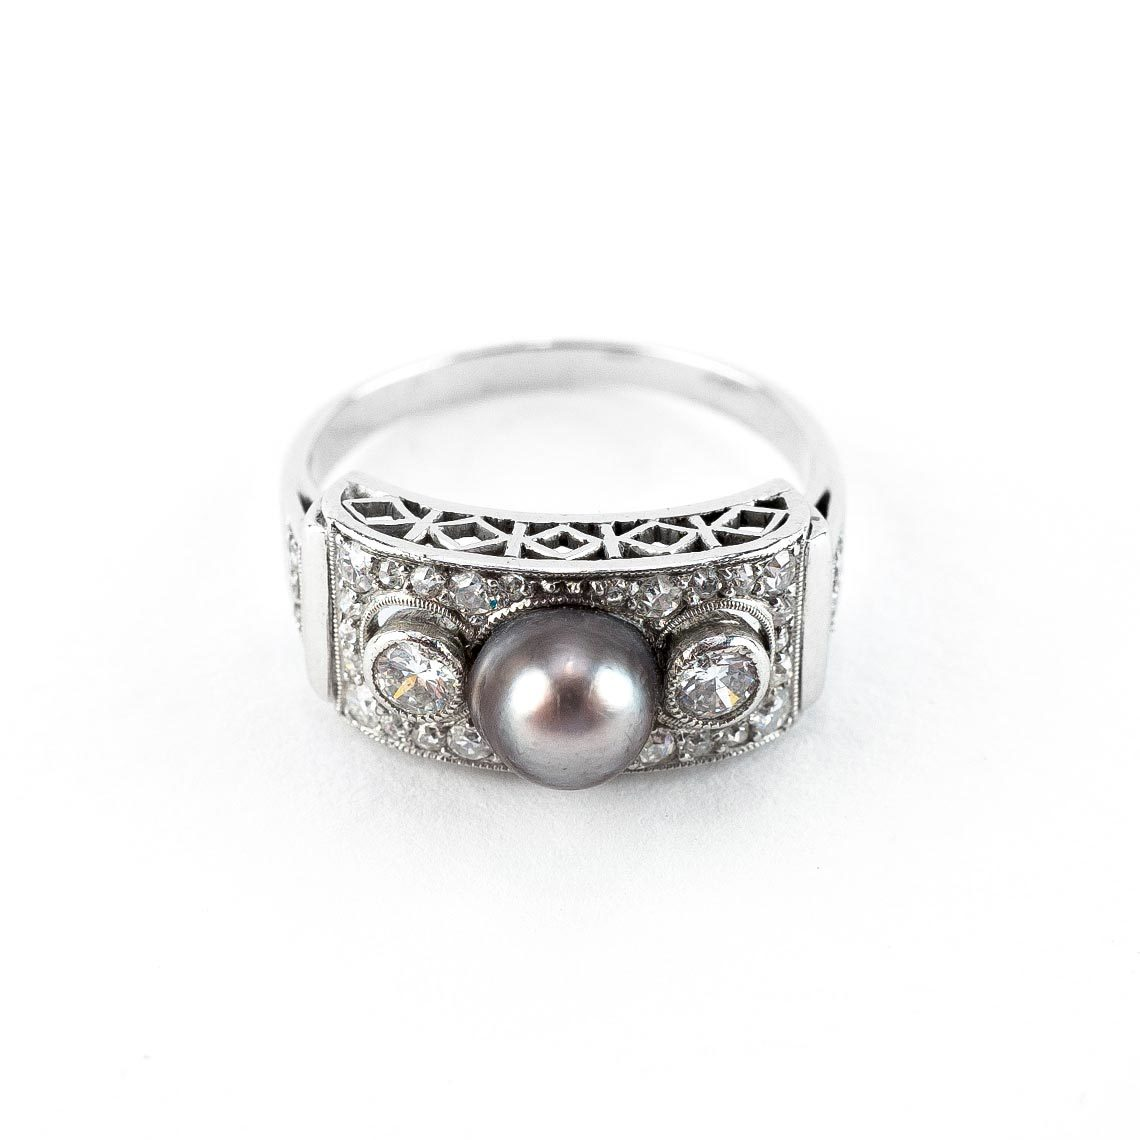 Art Deco White Gold Ring